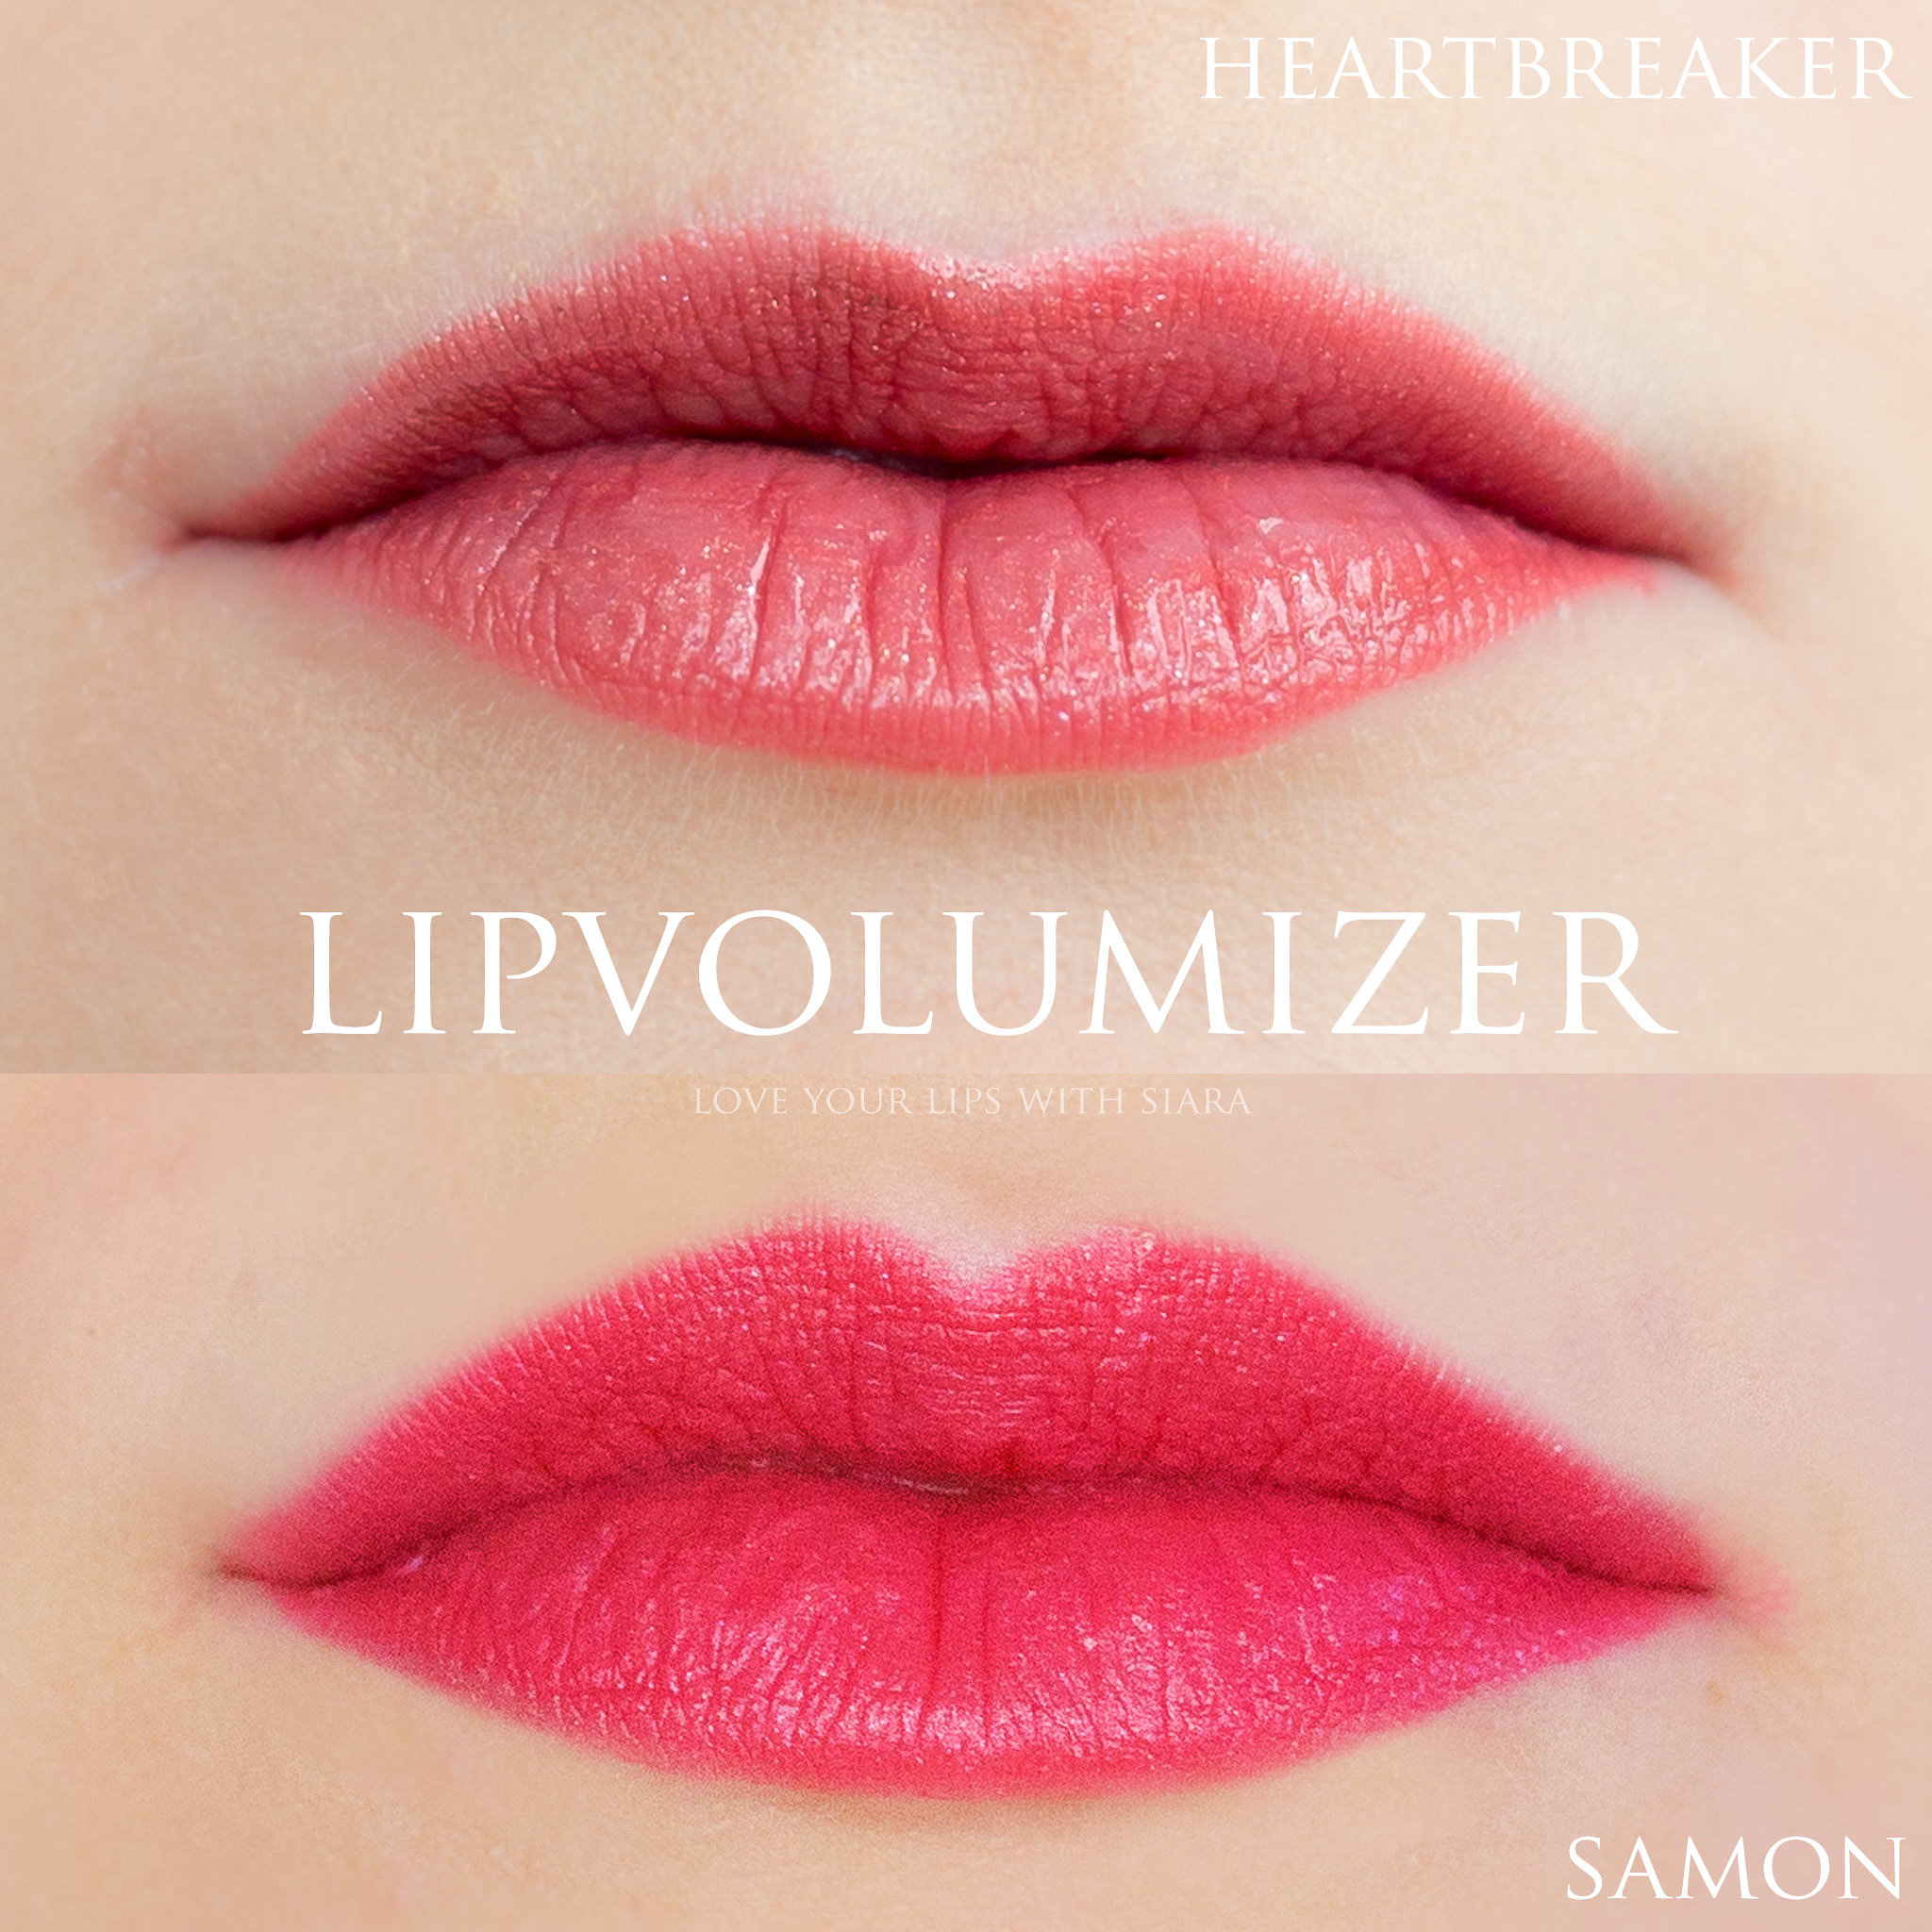 LipVolumizer Before and After